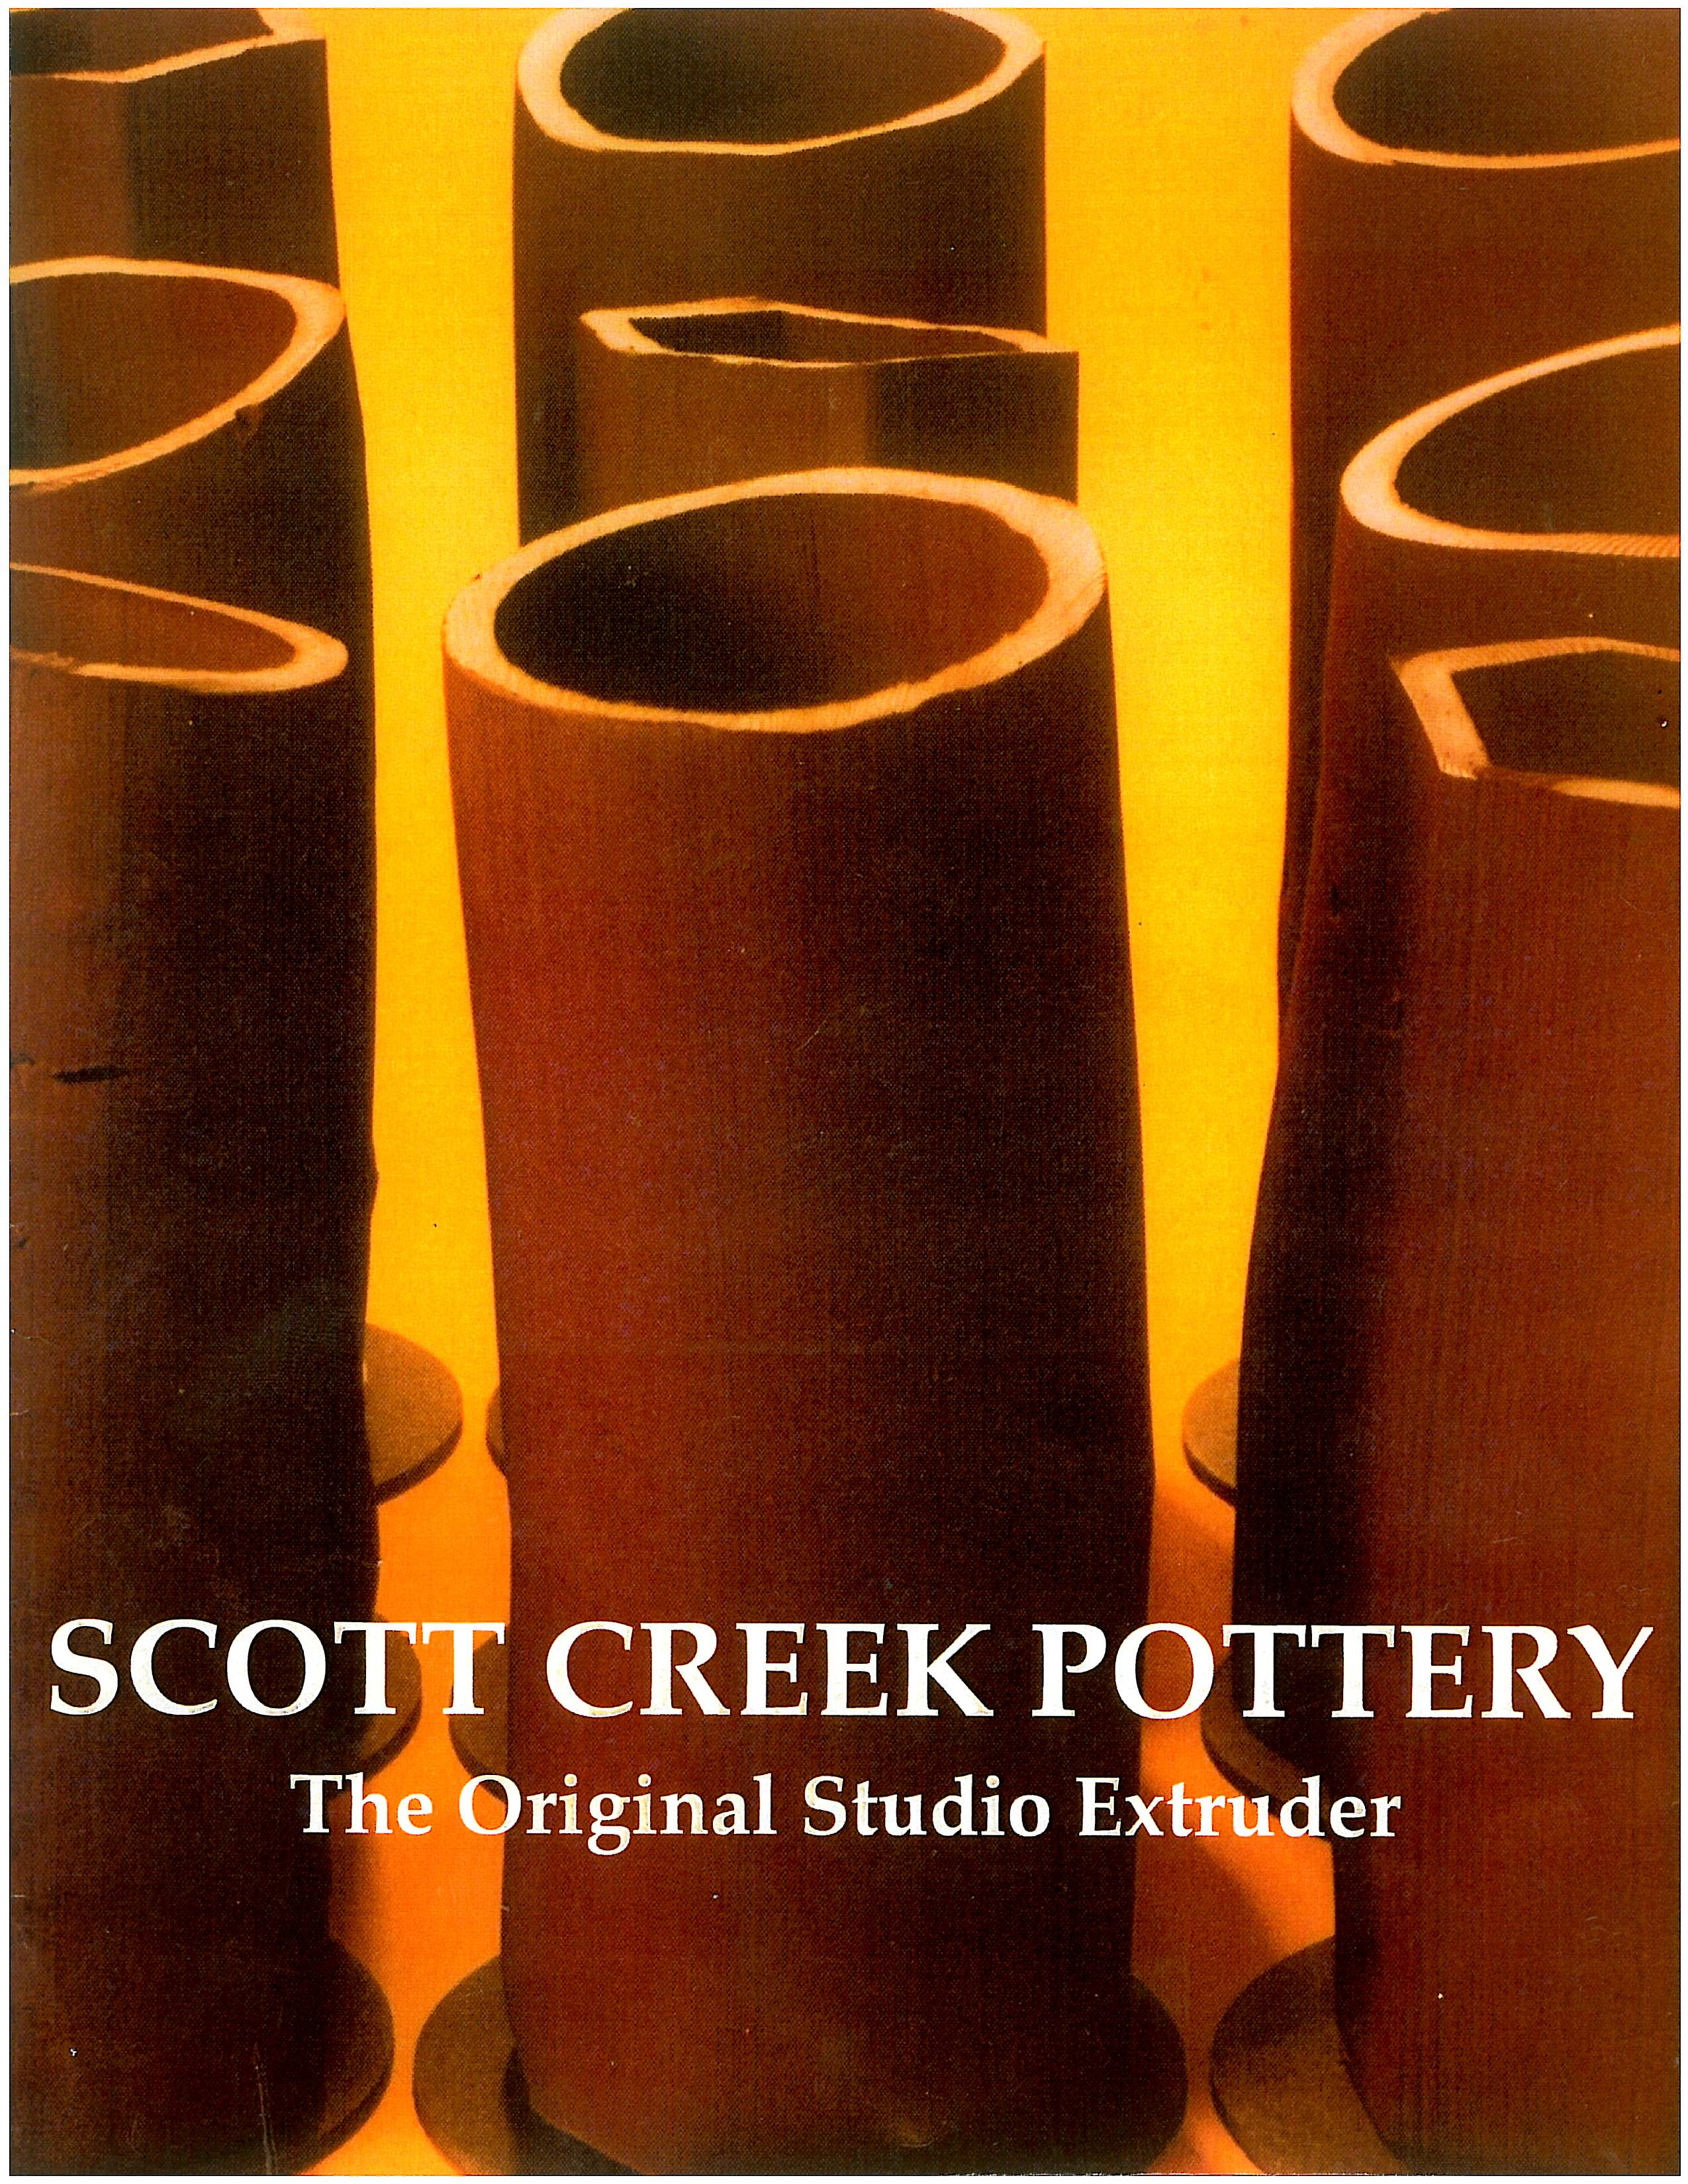 Scott Creek Pottery